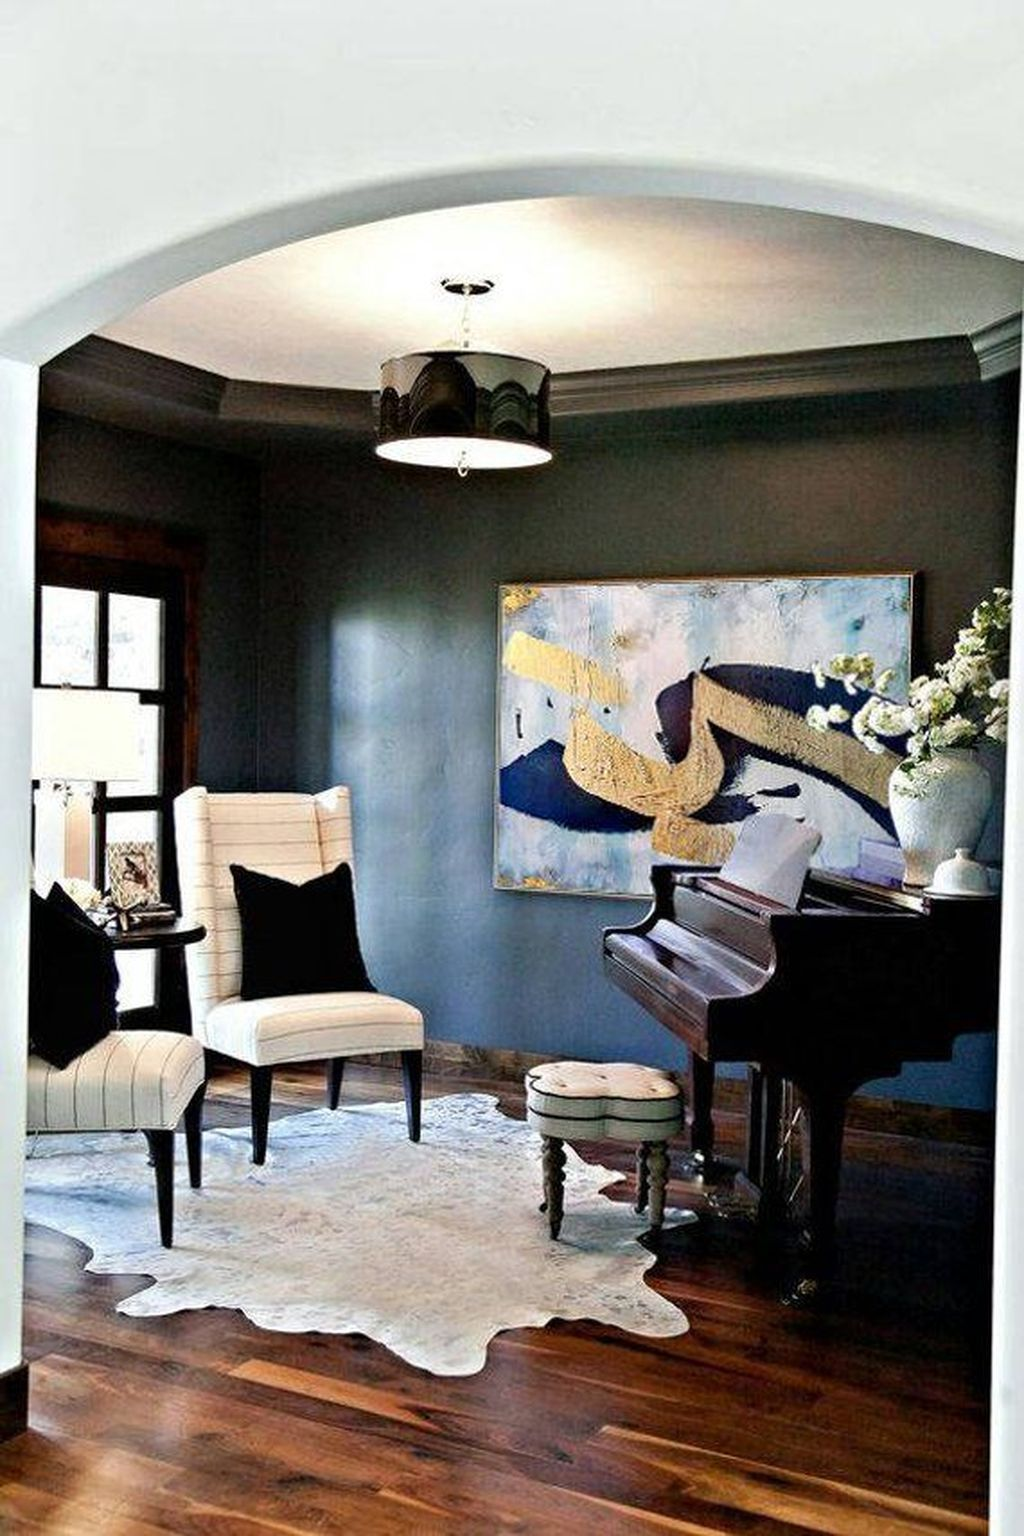 how to place a cowhide rug in living room